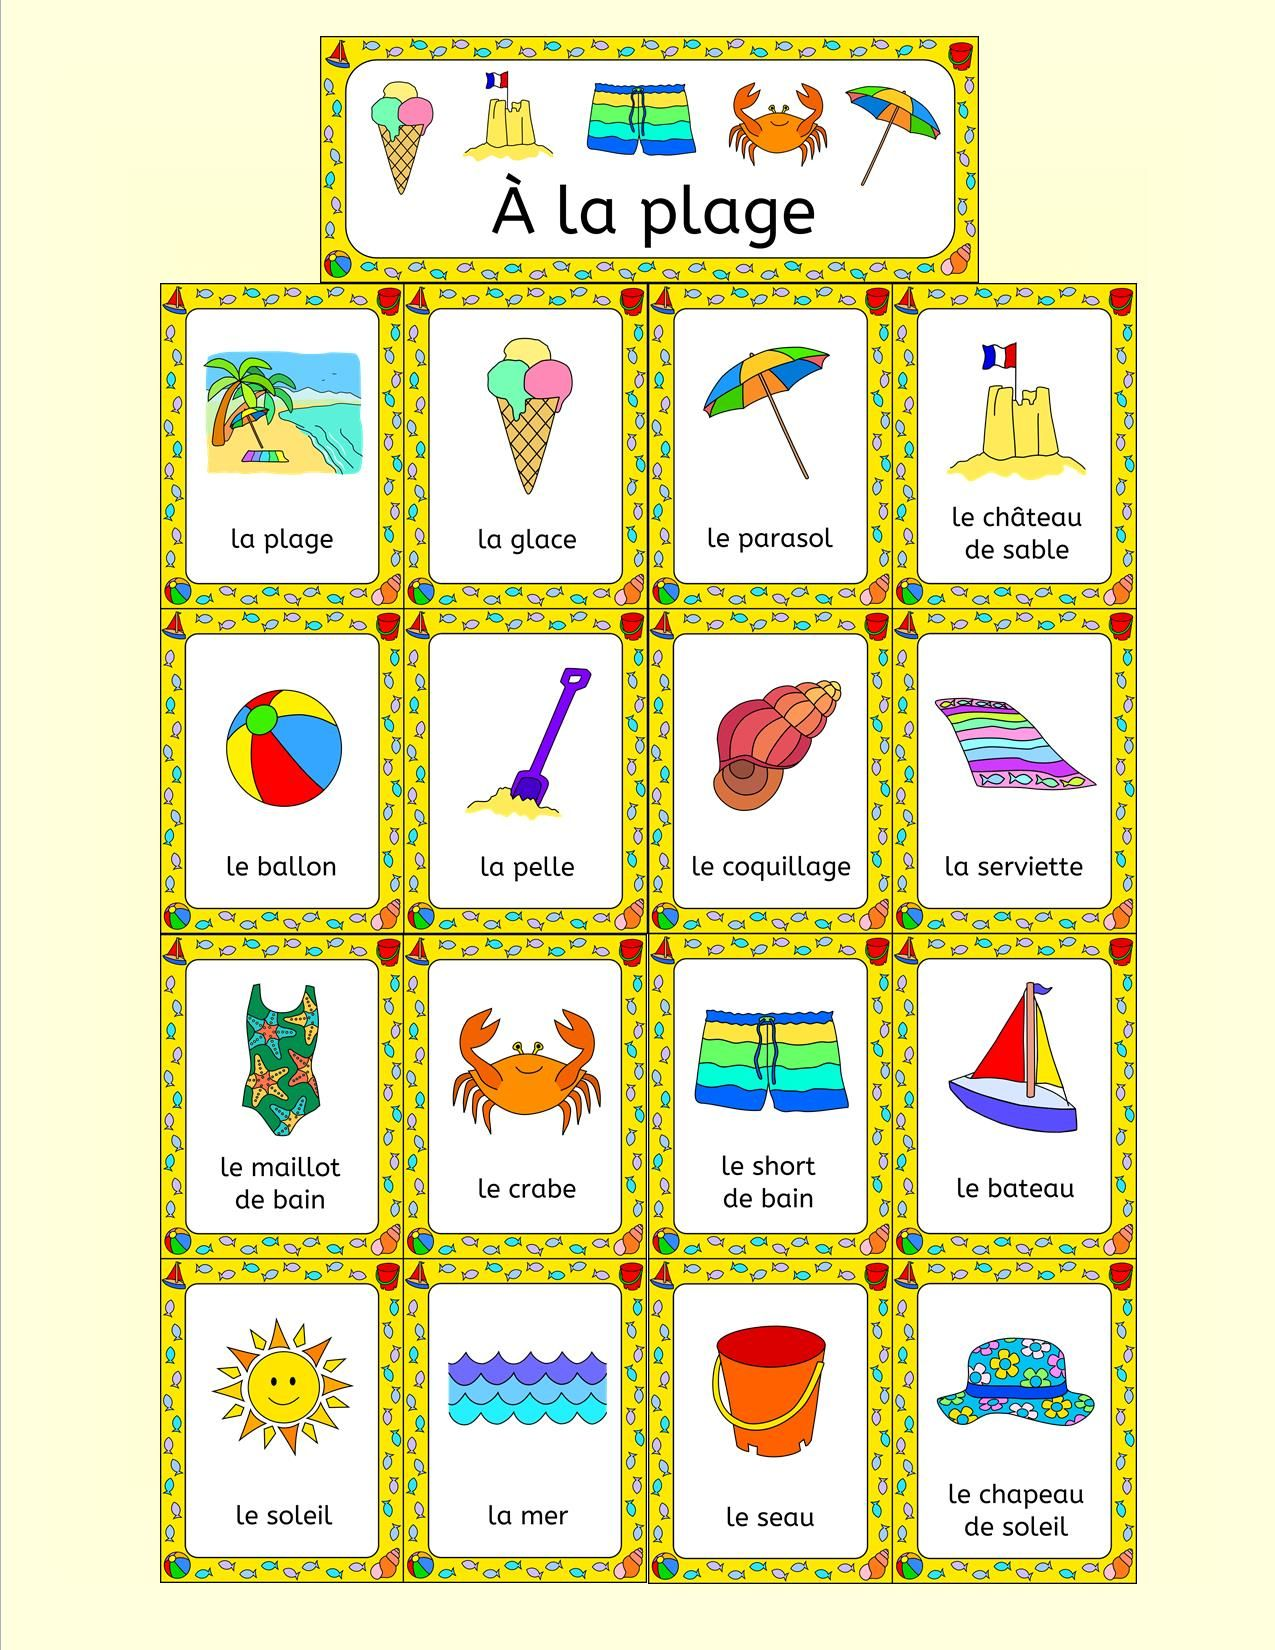 French Summer Beach Vacation Resources A La Plage Activities Puzzles Bingo French Summer Summer Lesson Learn French [ 1650 x 1275 Pixel ]